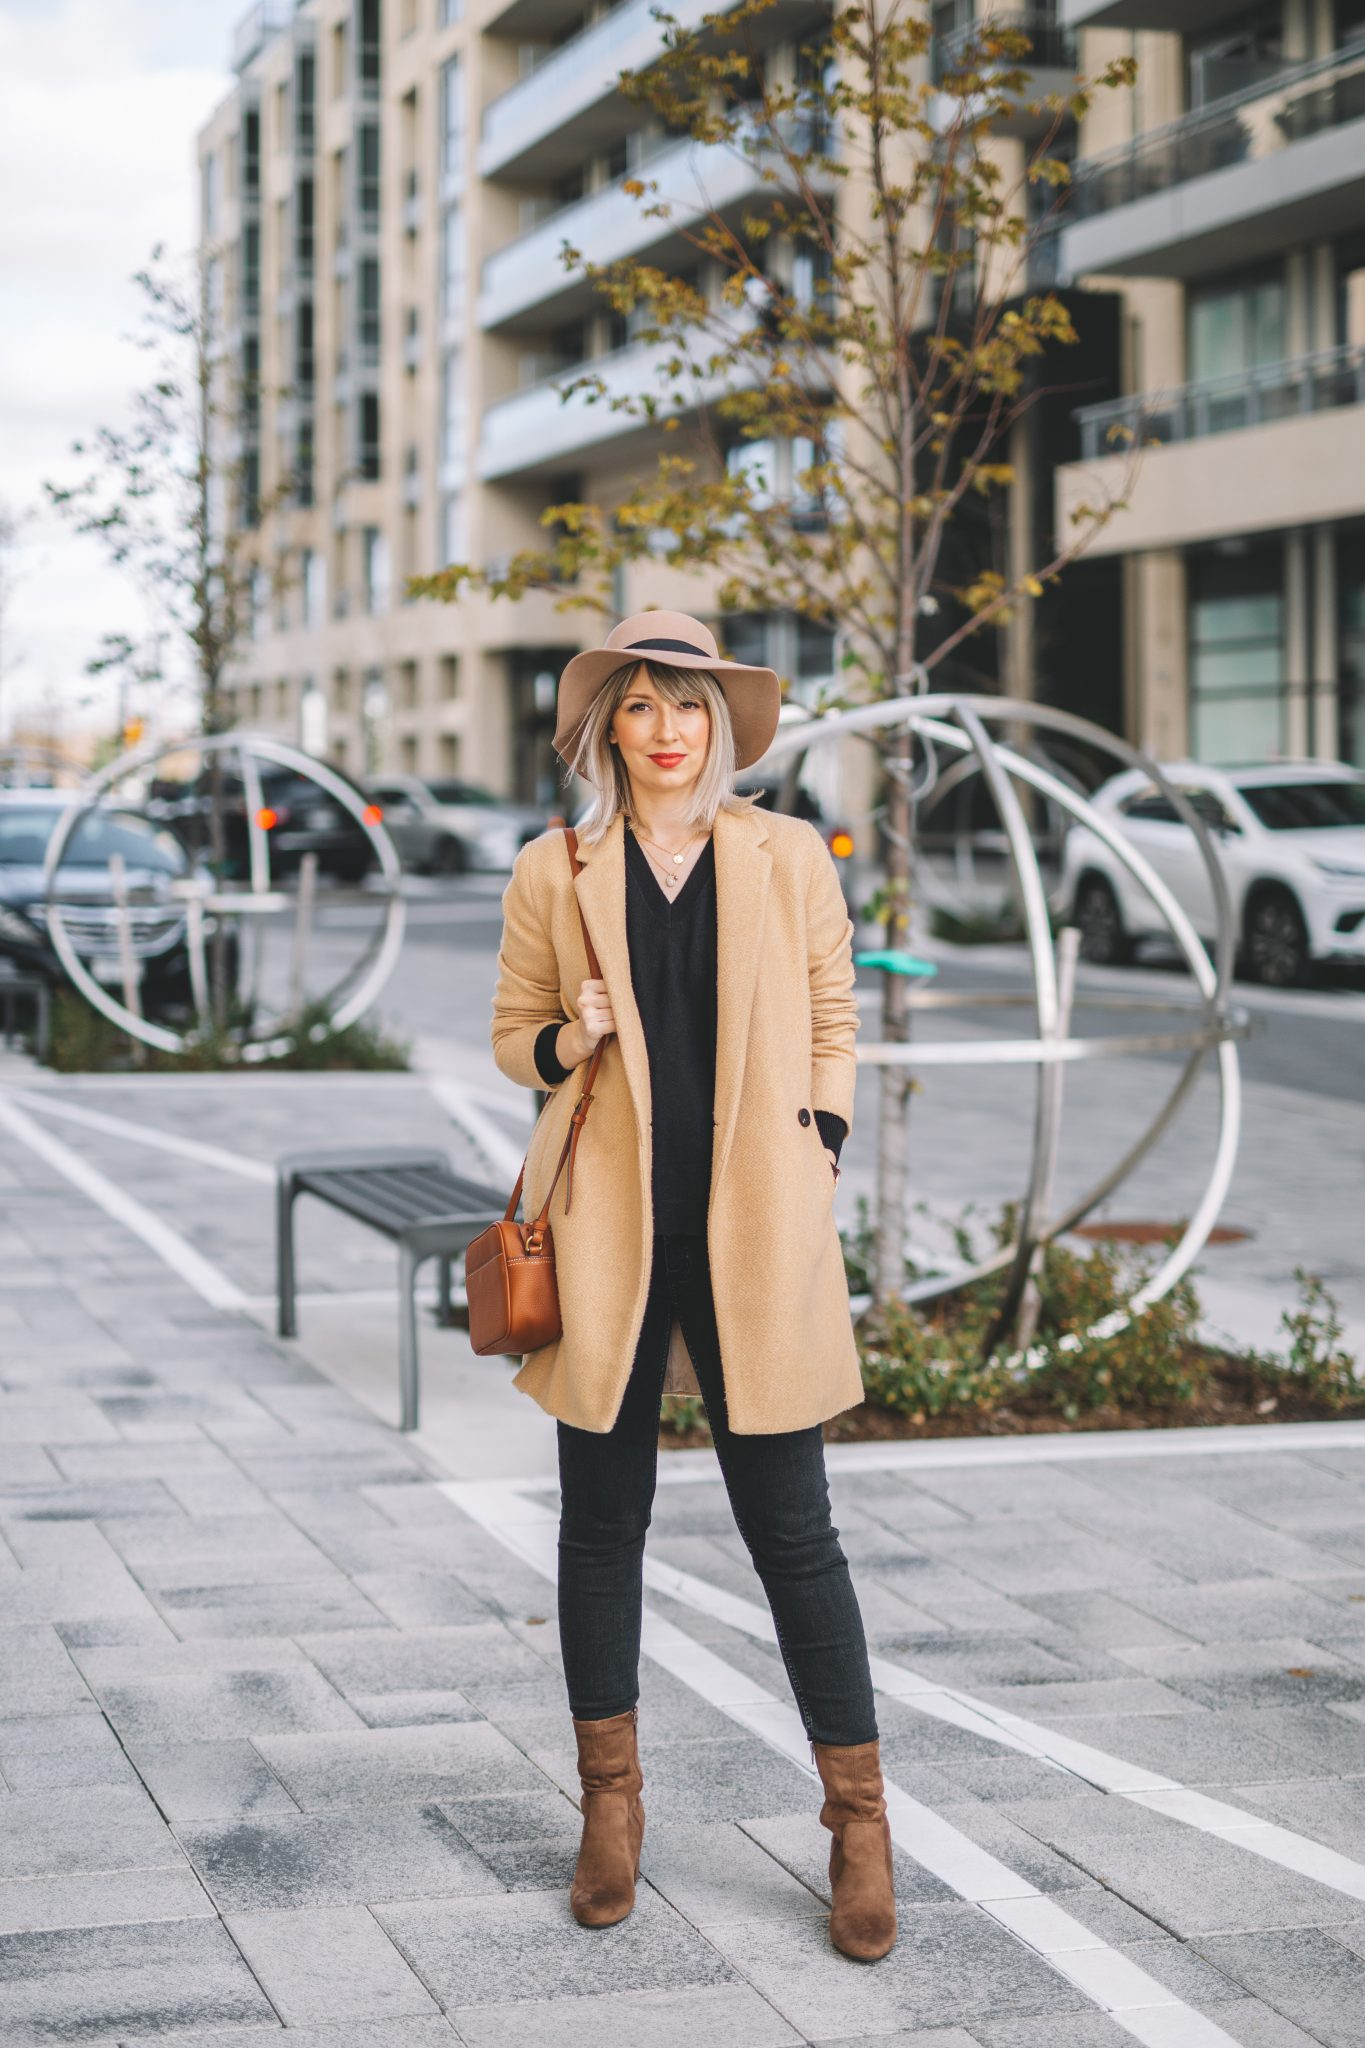 Beige coat and hat minimalist style (1 of 10)